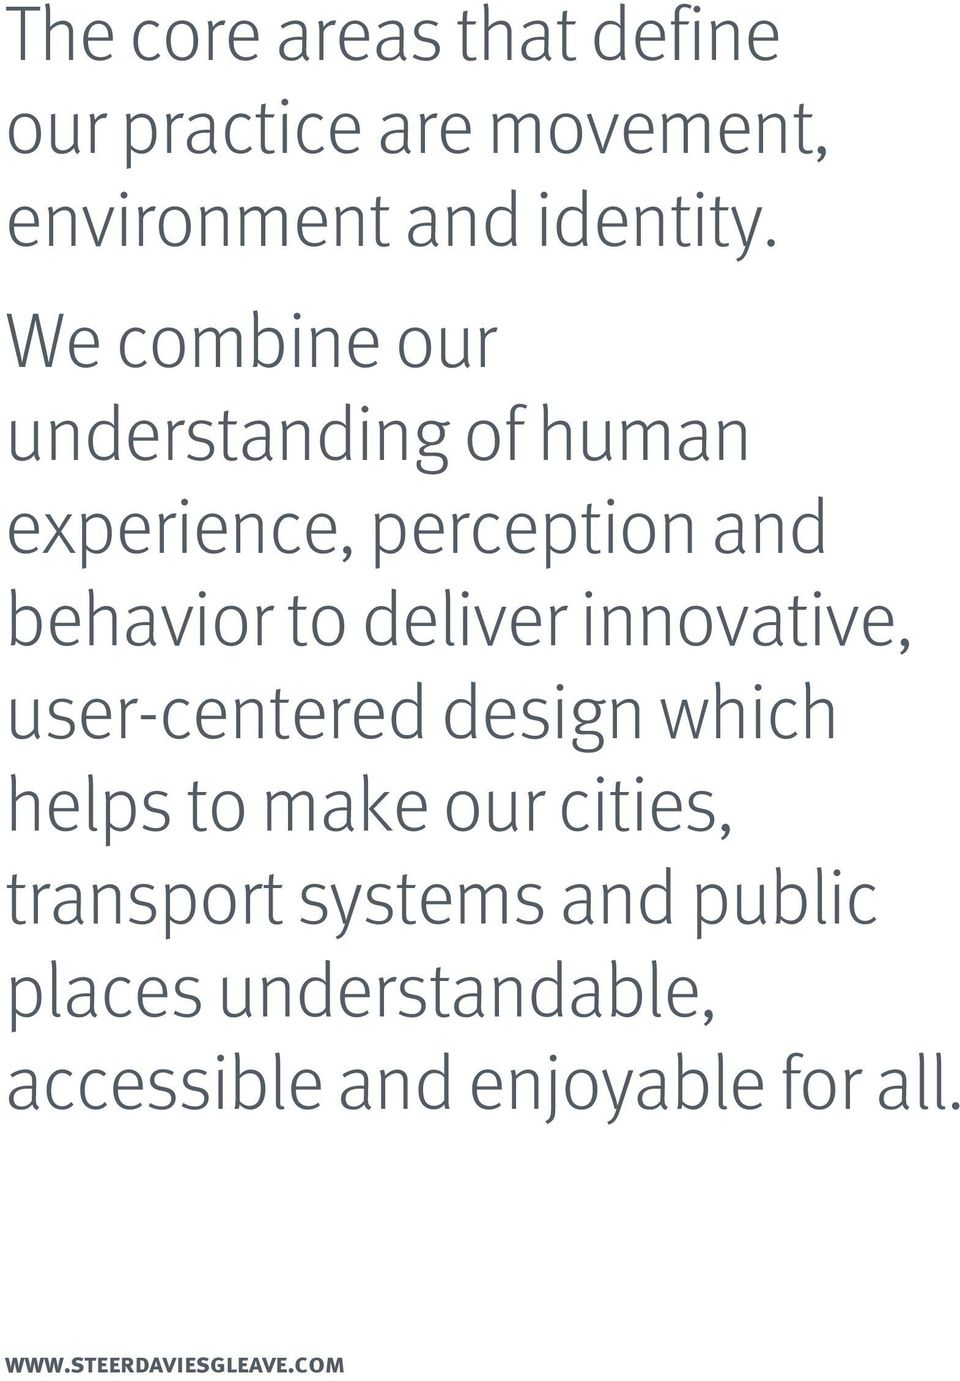 innovative, usercentered design which helps to make our cities, transport systems